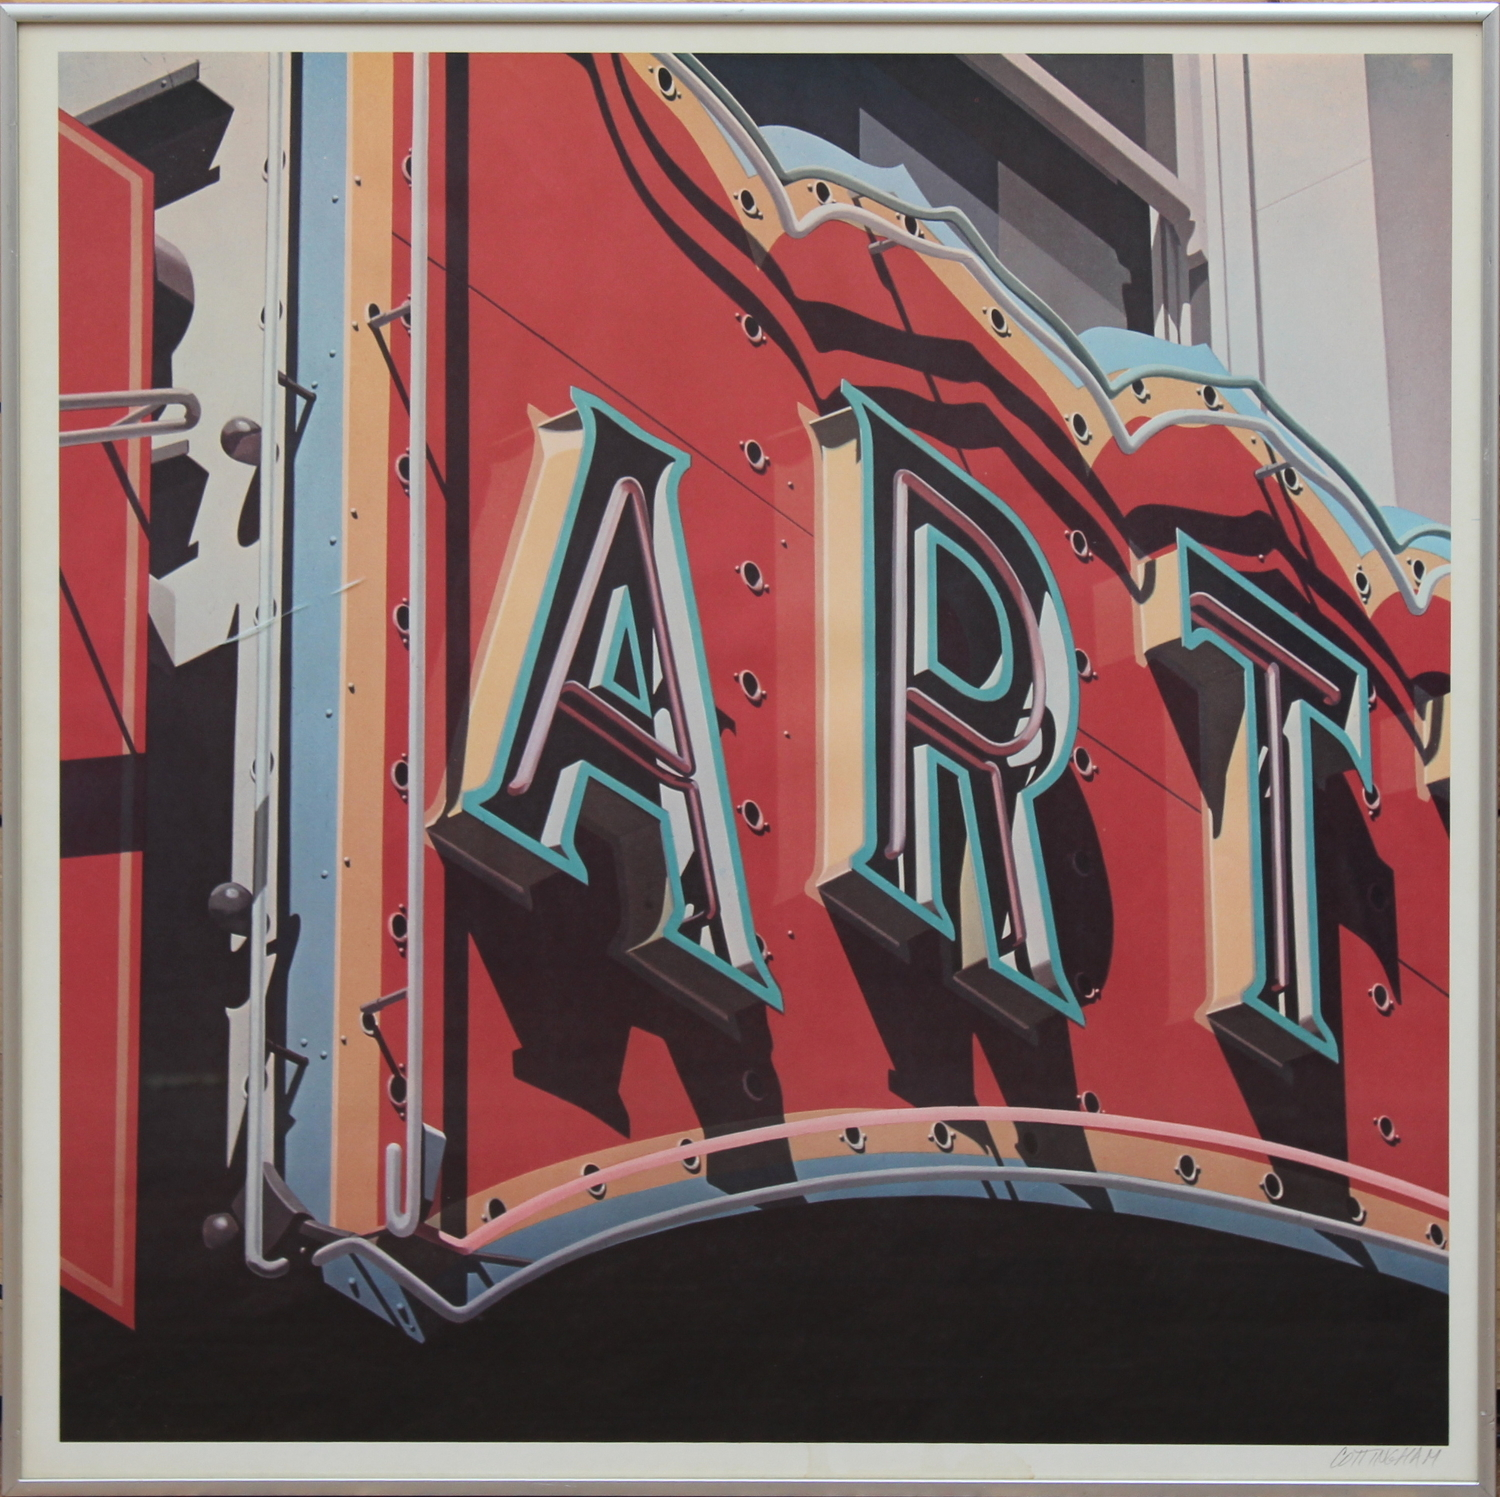 Robert Cottingham-Art-